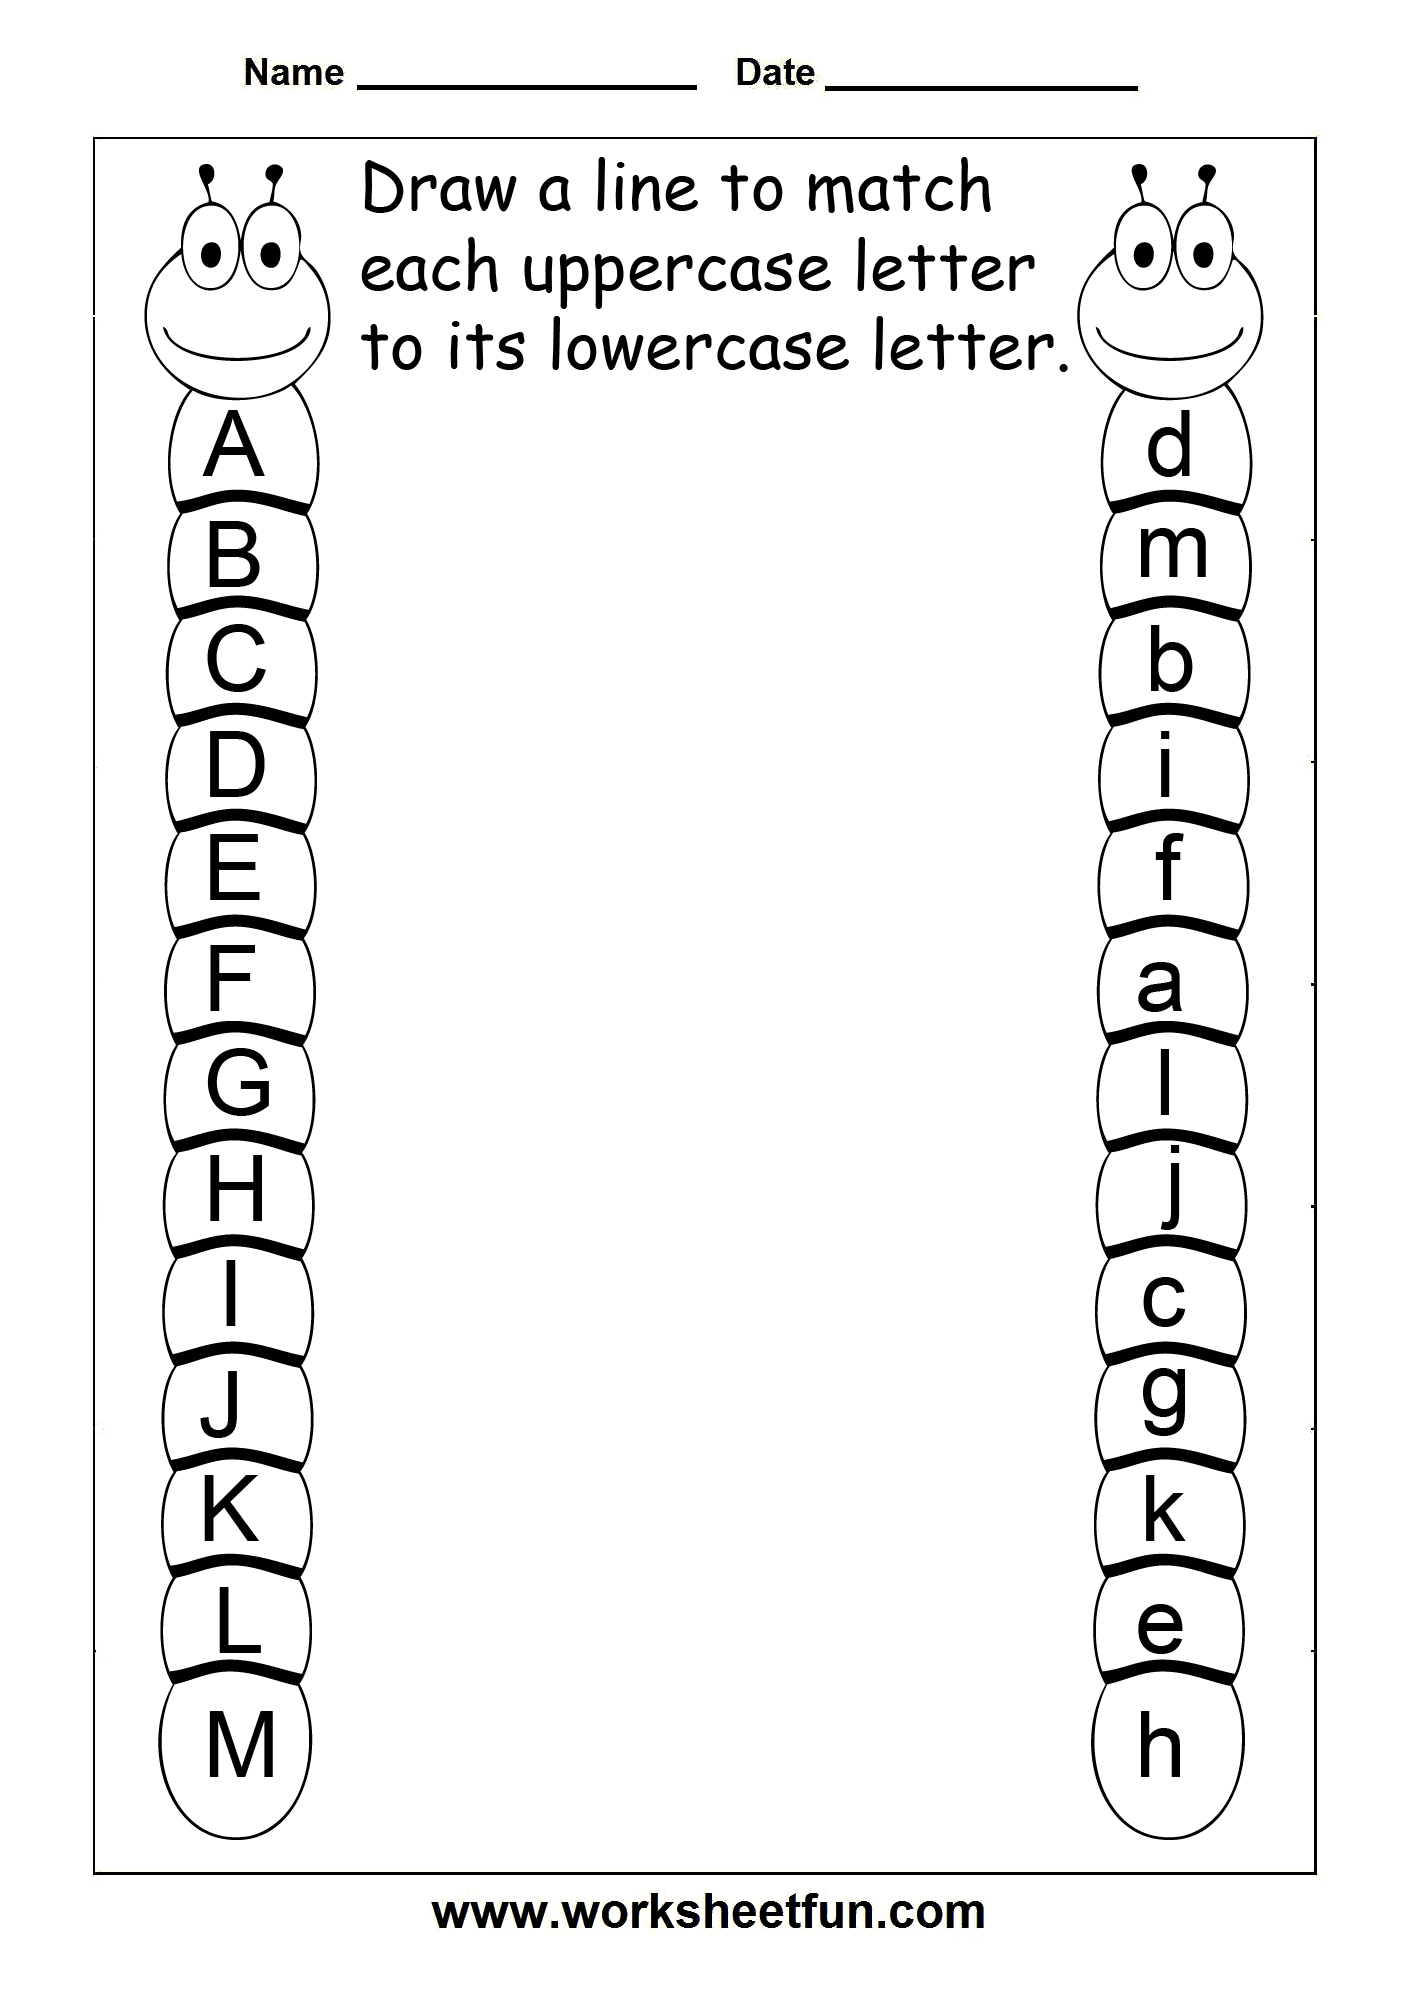 Worksheet Free Printable Worksheets For Kindergarten Alphabet alphabet letter identification worksheets for kids printable recognition sviolett recognizing and matching identical letters free preschool